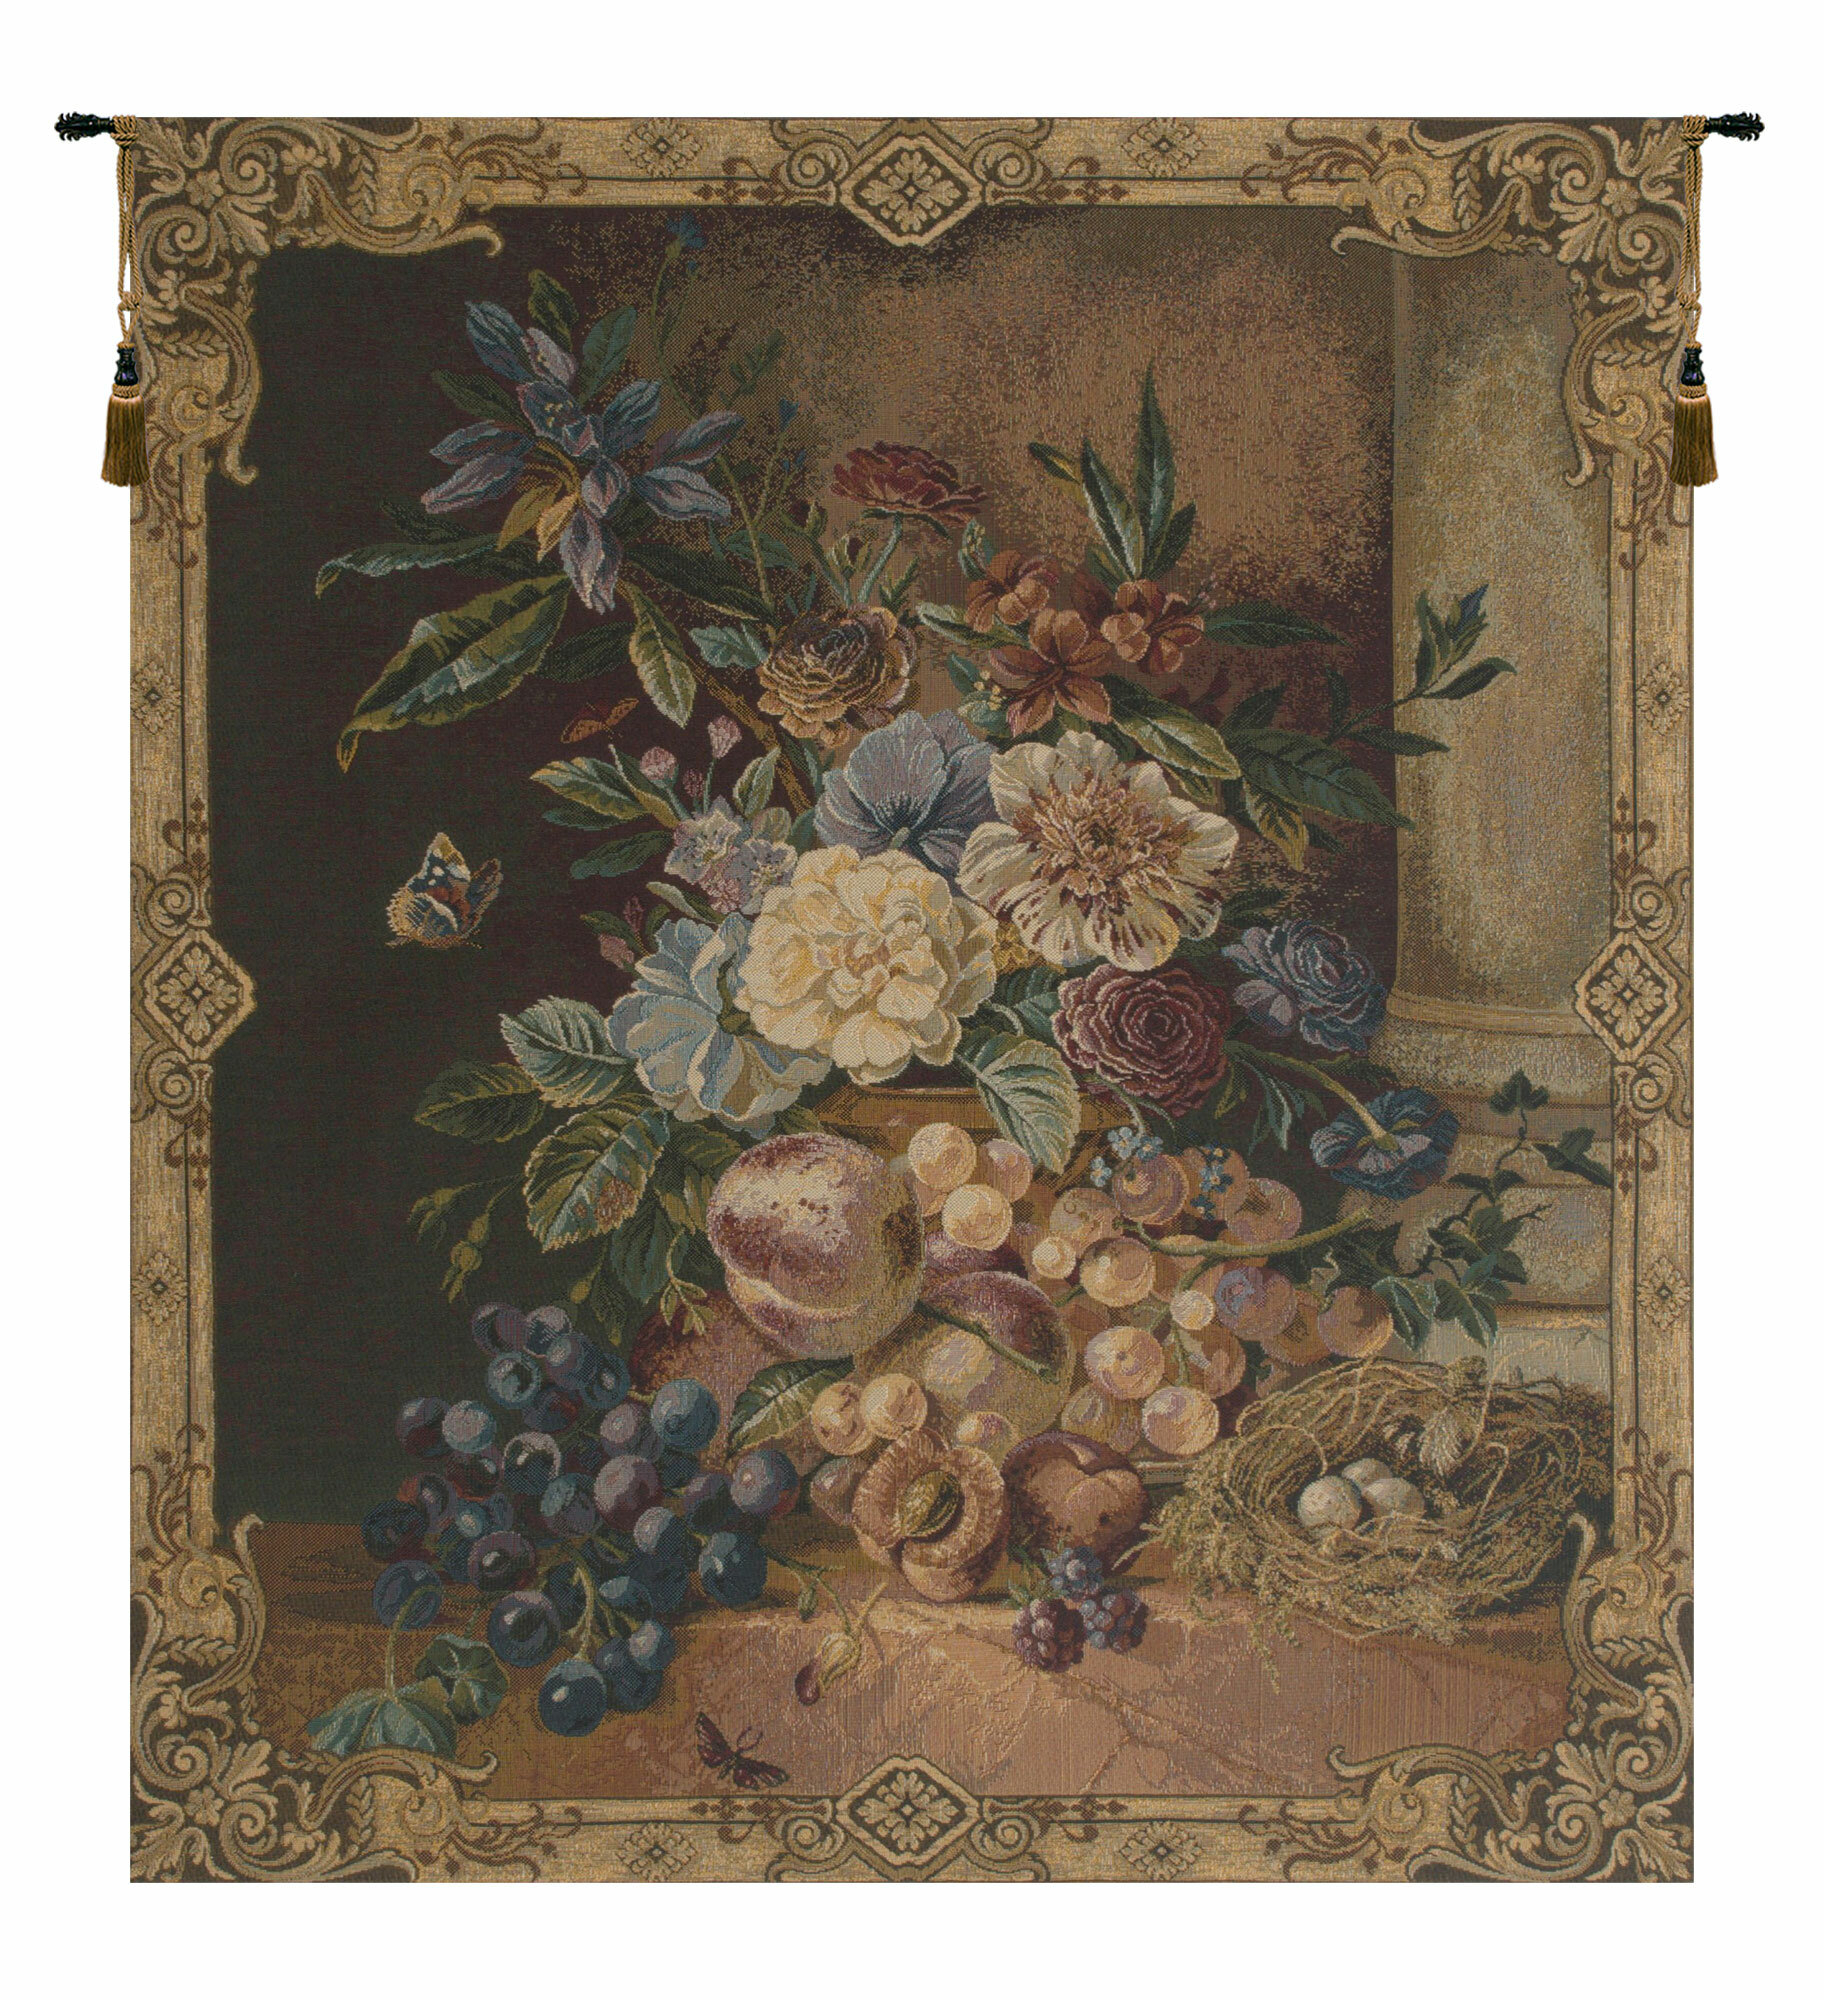 Frame Of Flowers I European Wall Hanging In Current Blended Fabric Autumn Tranquility Verse Wall Hangings (View 6 of 20)